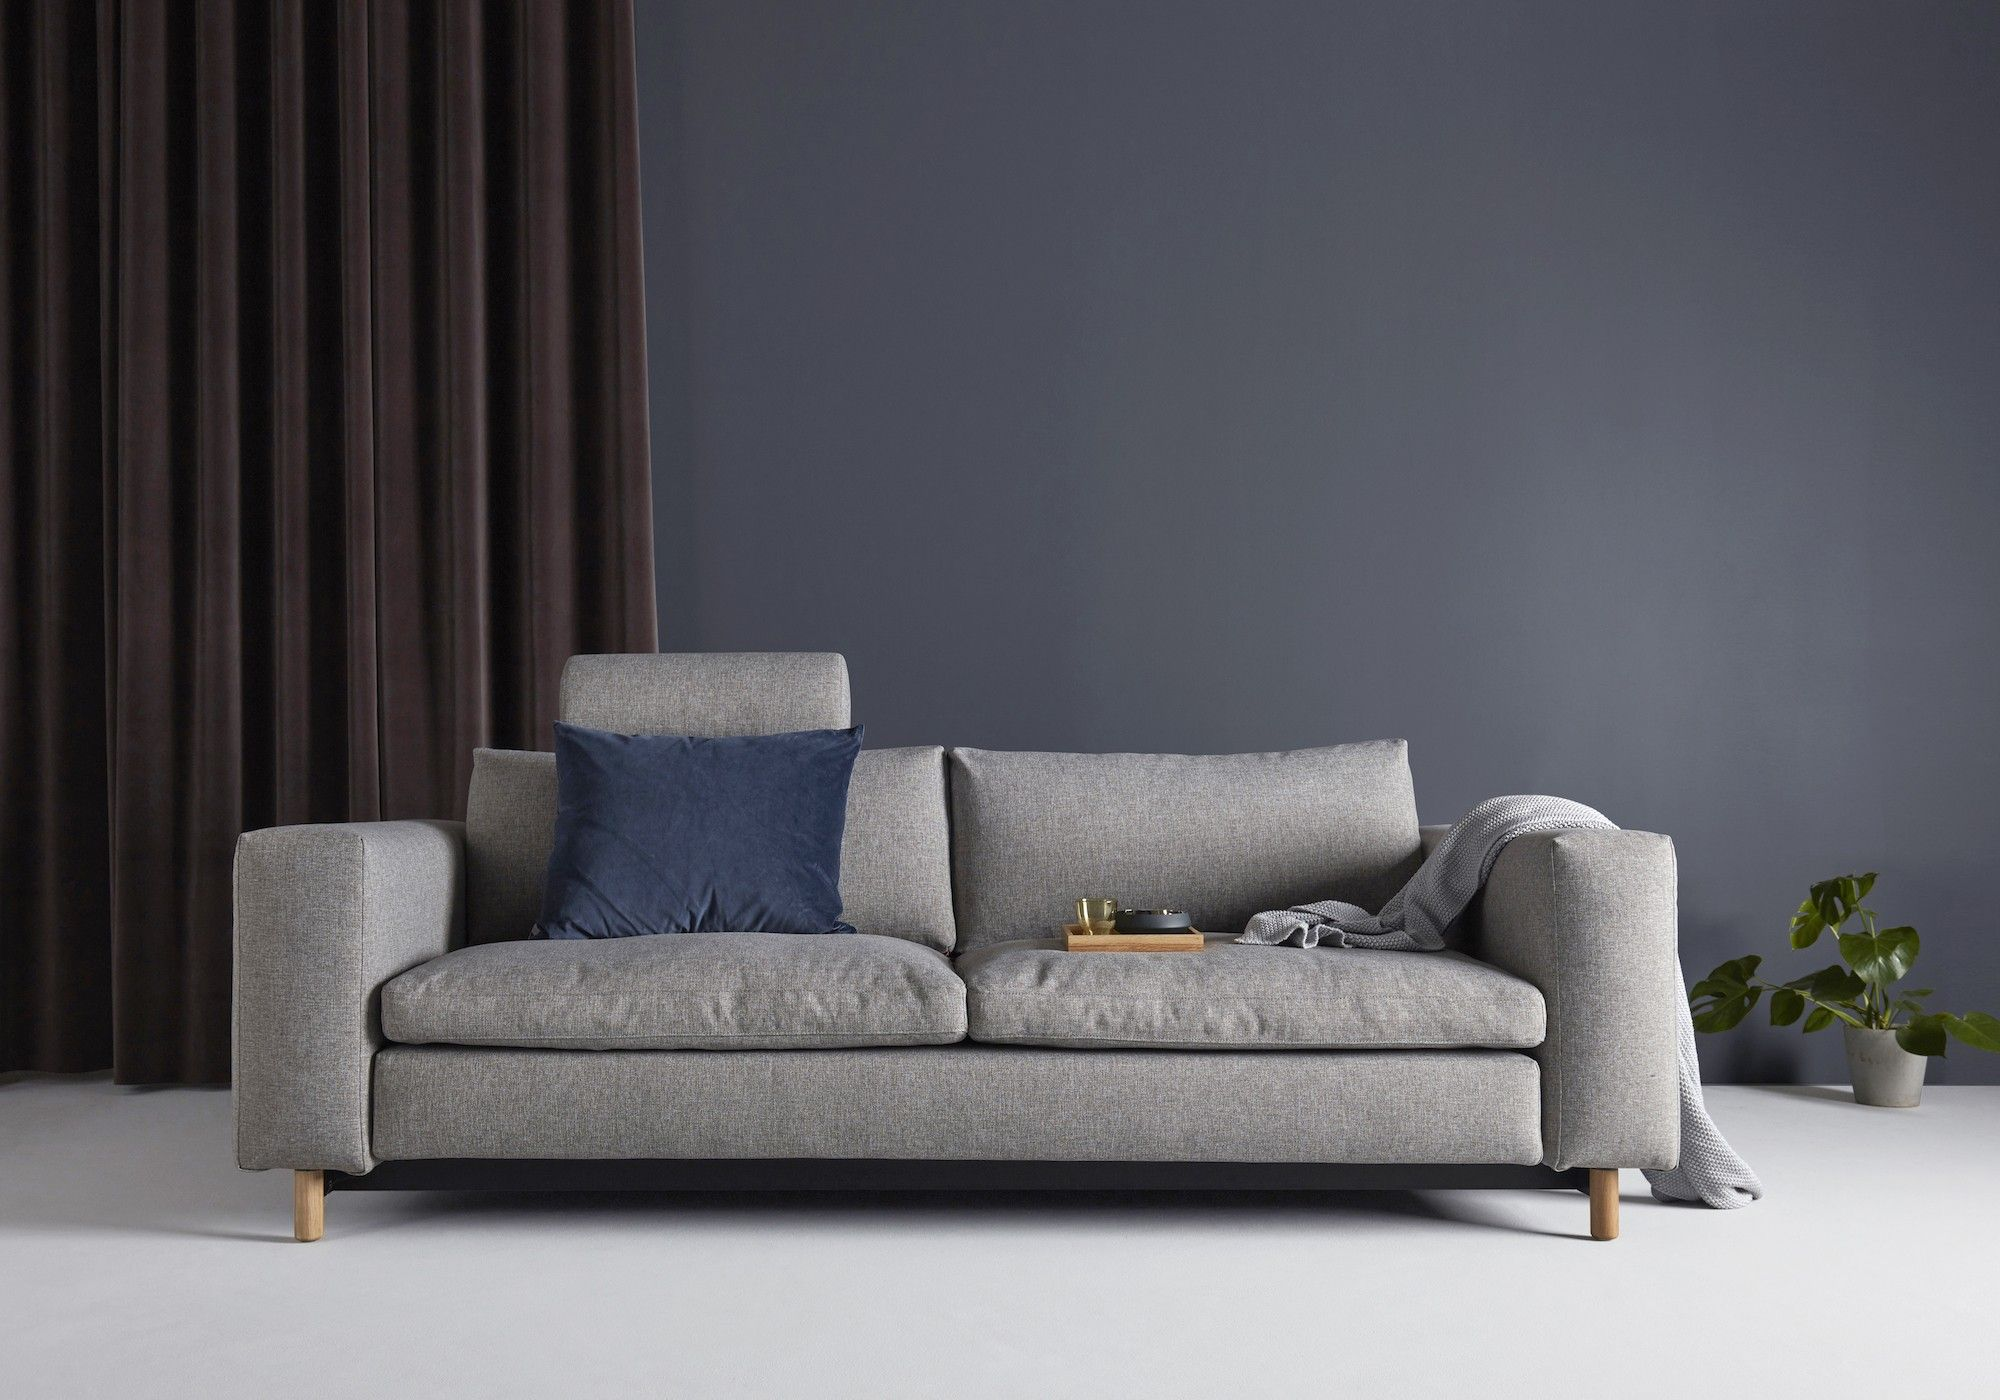 The Magni Queen Sofa Bed With Arms Is A 3 Seater Sofa That Turns Into A Queen Size Bed This Compact Sofa Bed Comes Wit Stylish Sofa Bed Sofa Bed Size Sofa